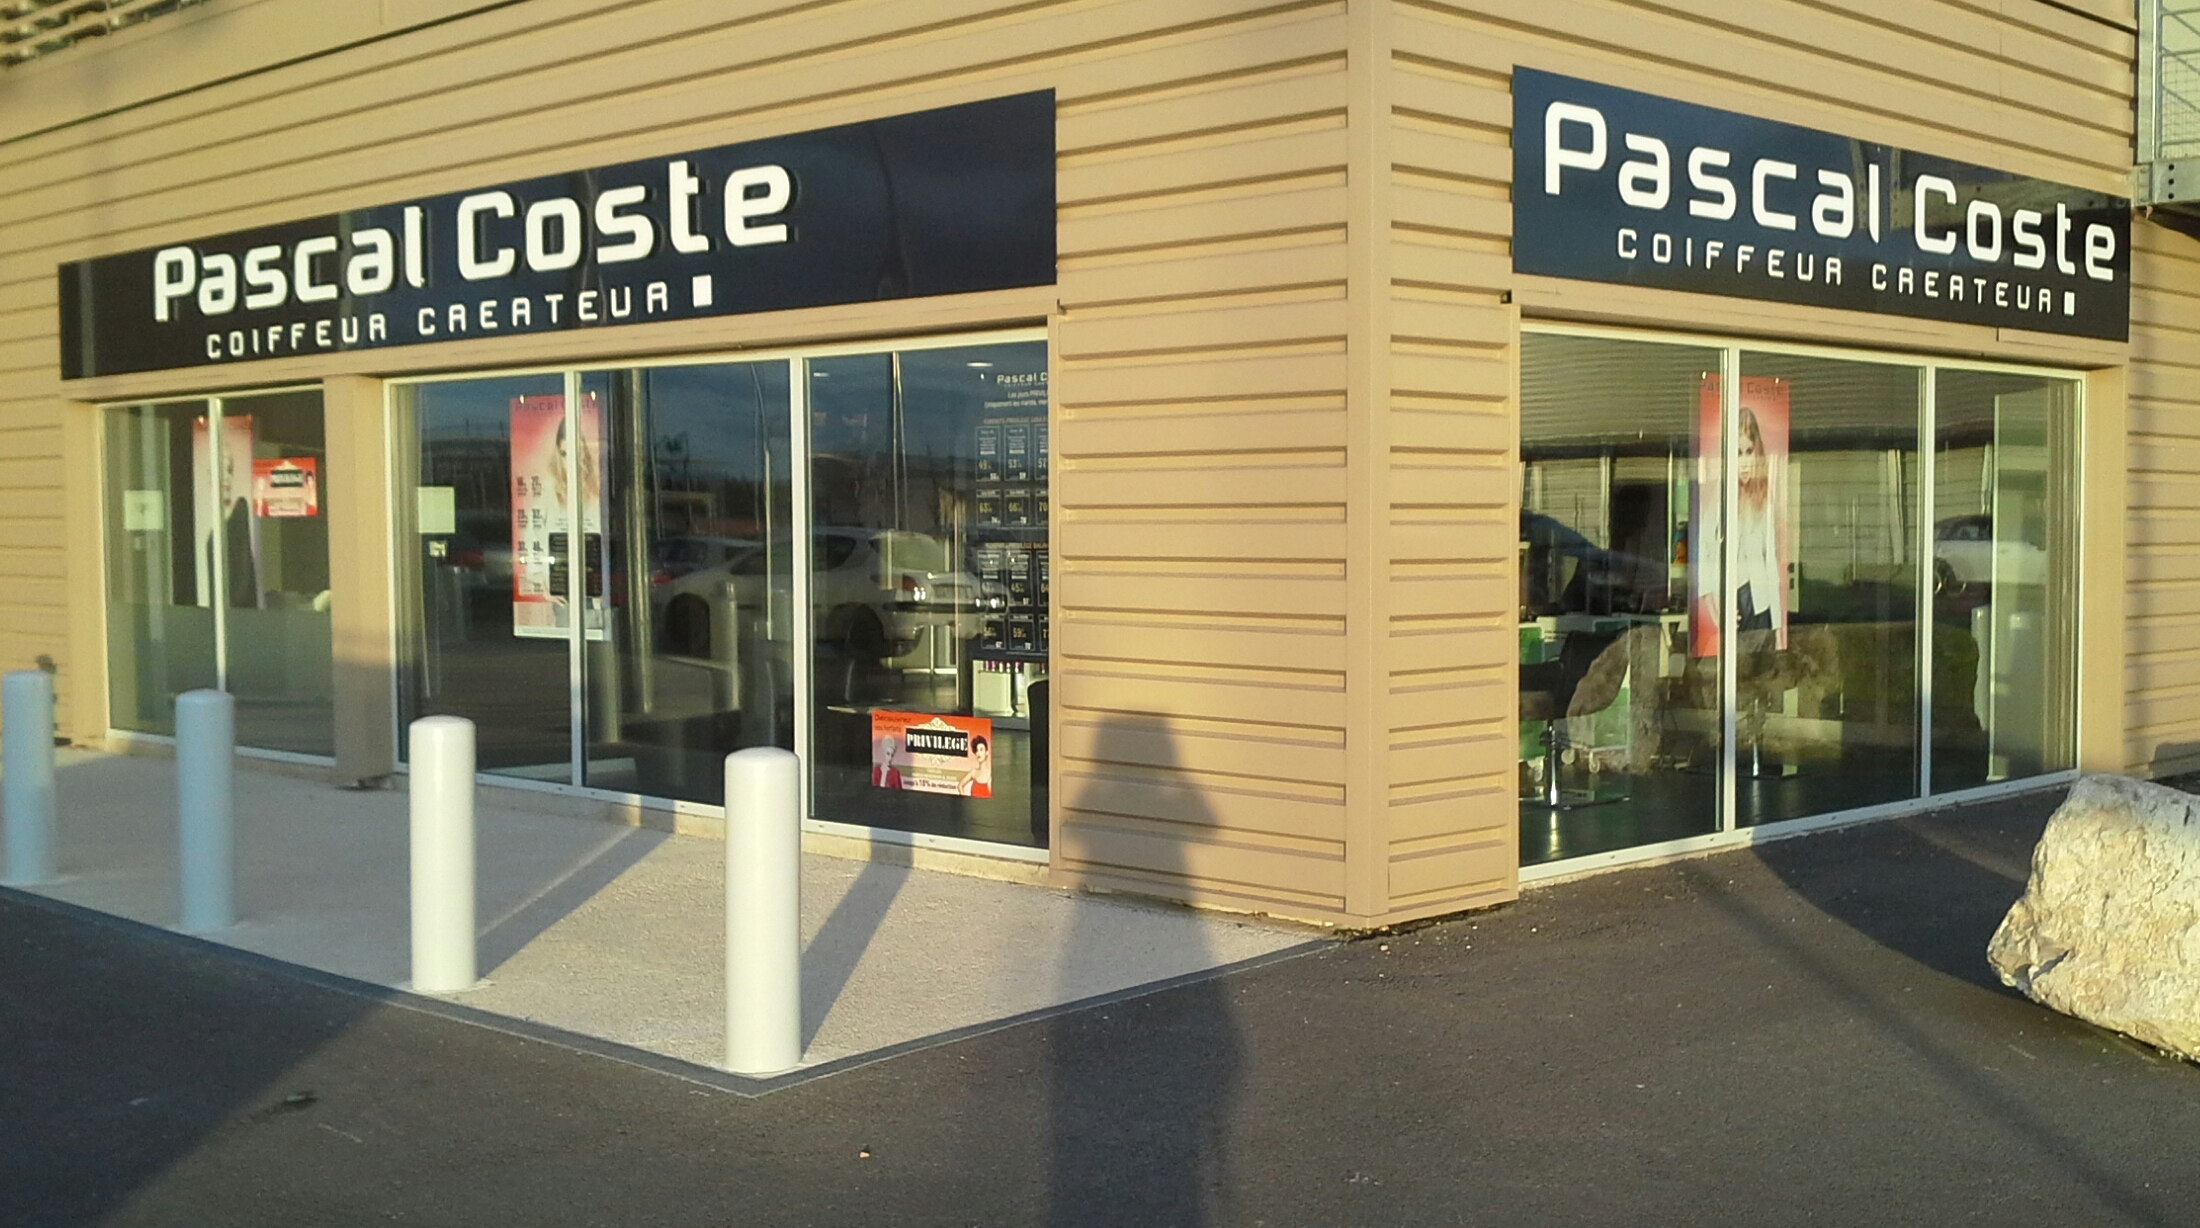 Pascal coste vauvert avis tarifs horaires t l phone for Salon pascal coste